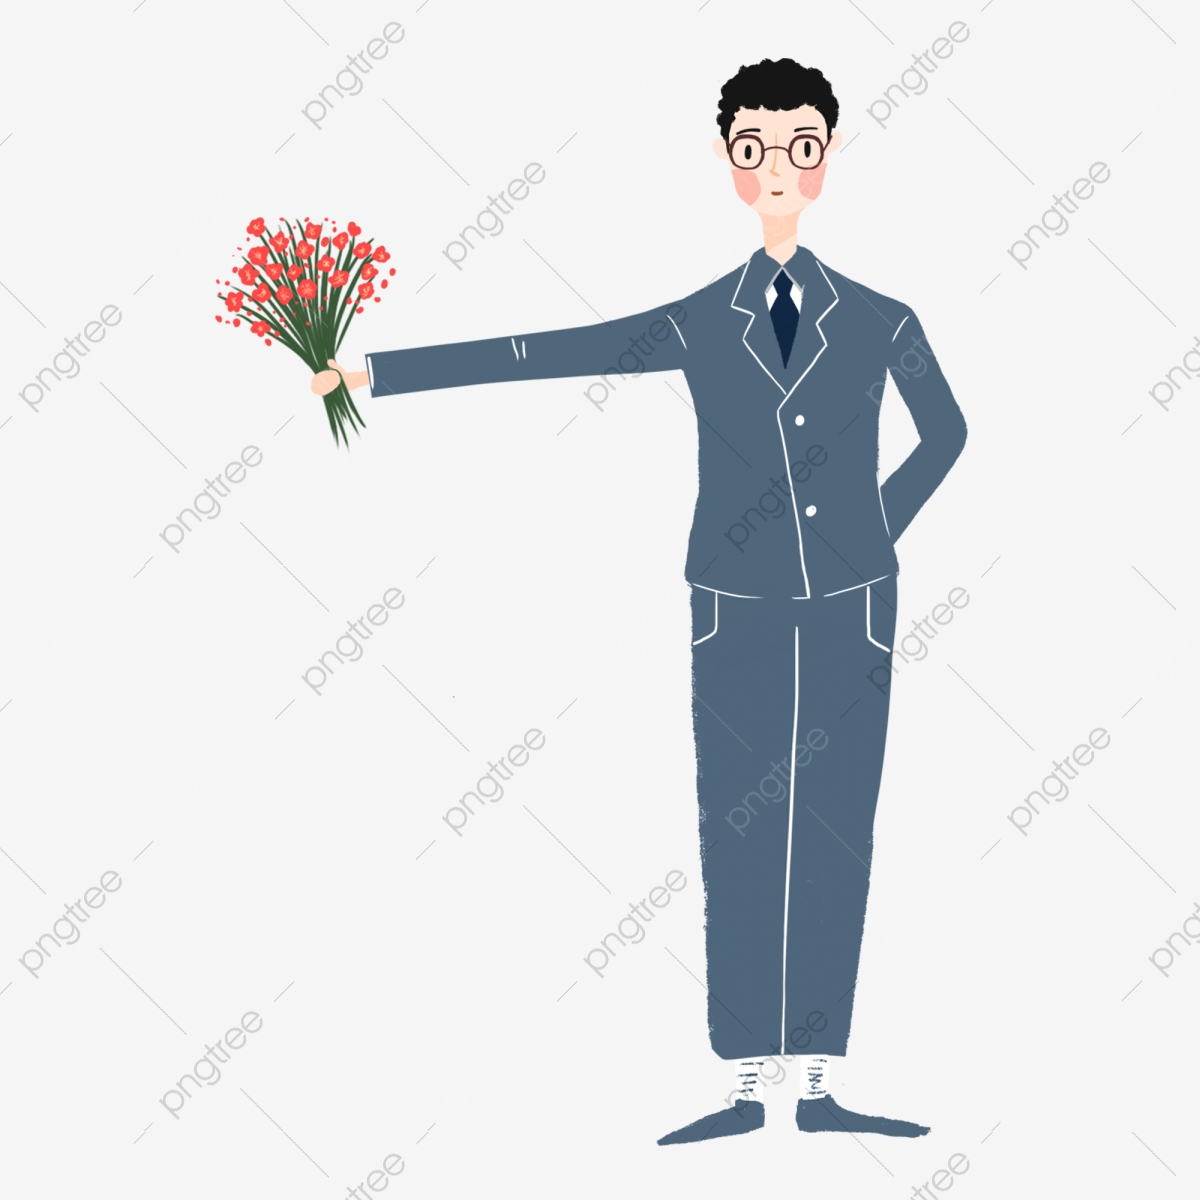 Groom Holding A Bouquet Taking Cartoon Groom